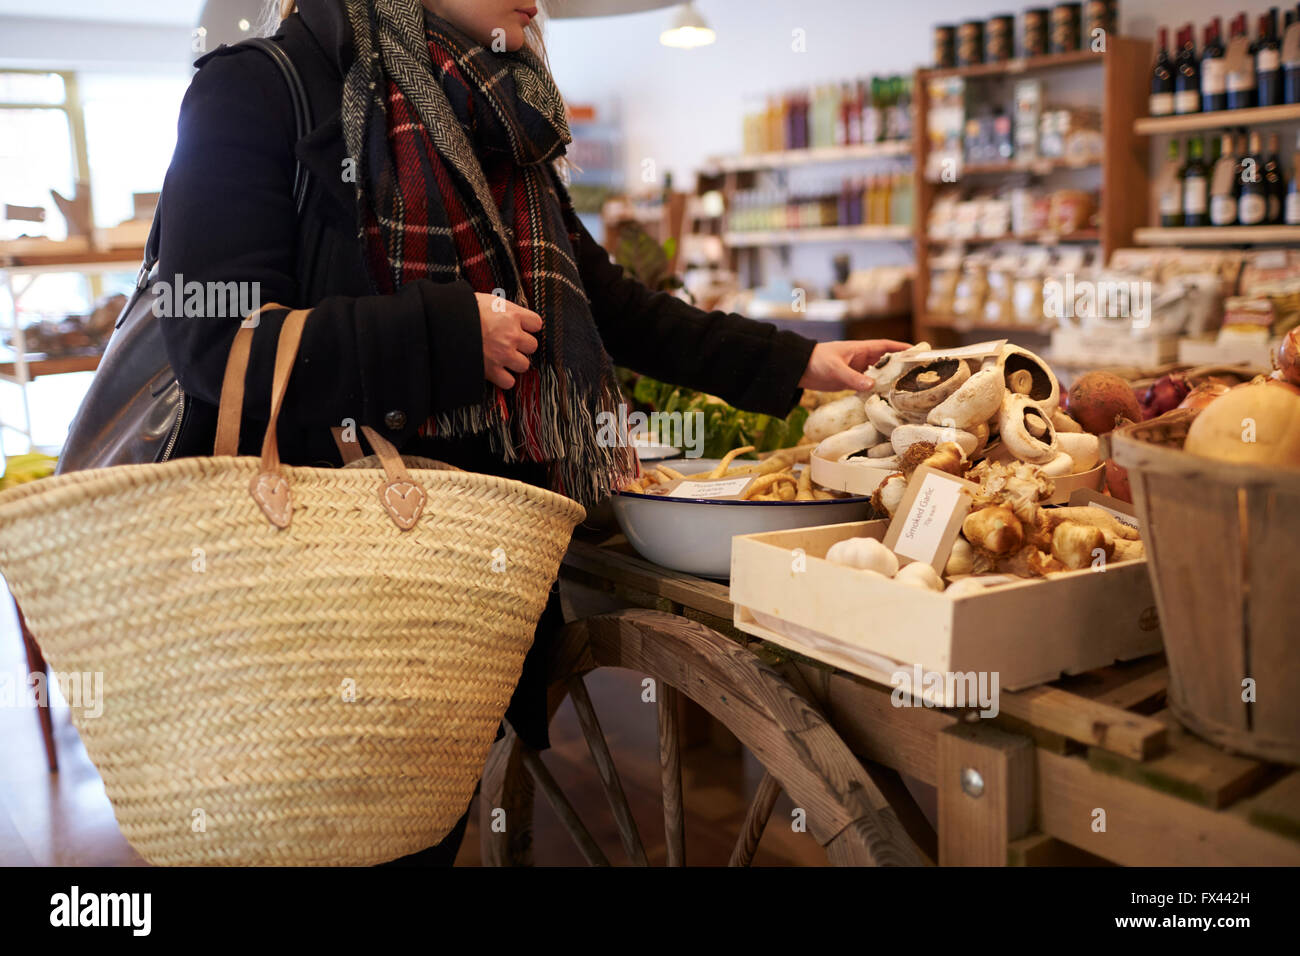 Close Up of Woman Shopping for Produce in Delicatessen Photo Stock